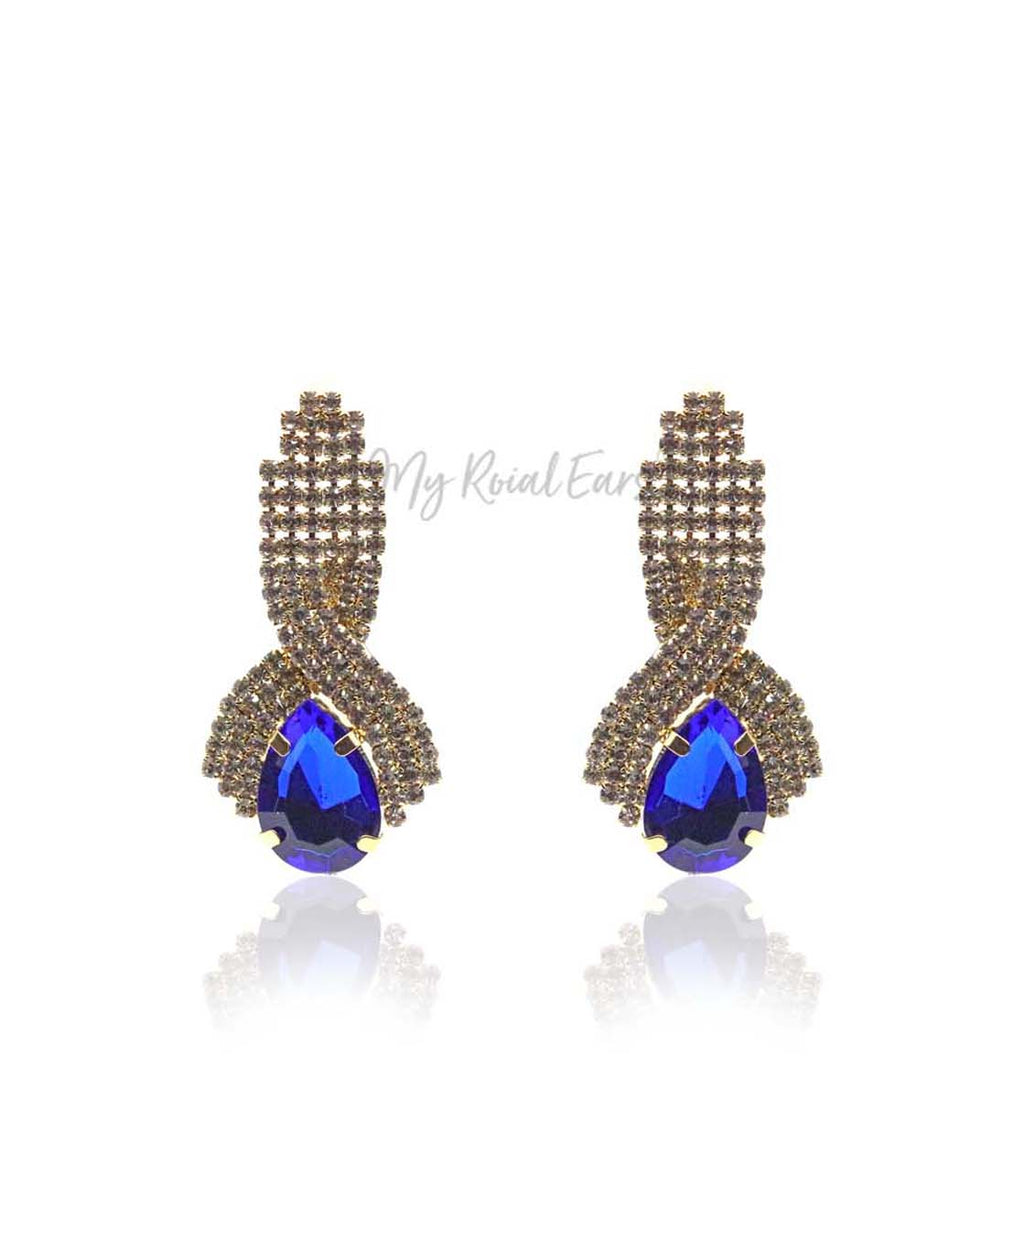 Q Mia Deep Blue-luxurious gold-plated crystal stone drop bridal earrings - My Roial Ears LTD